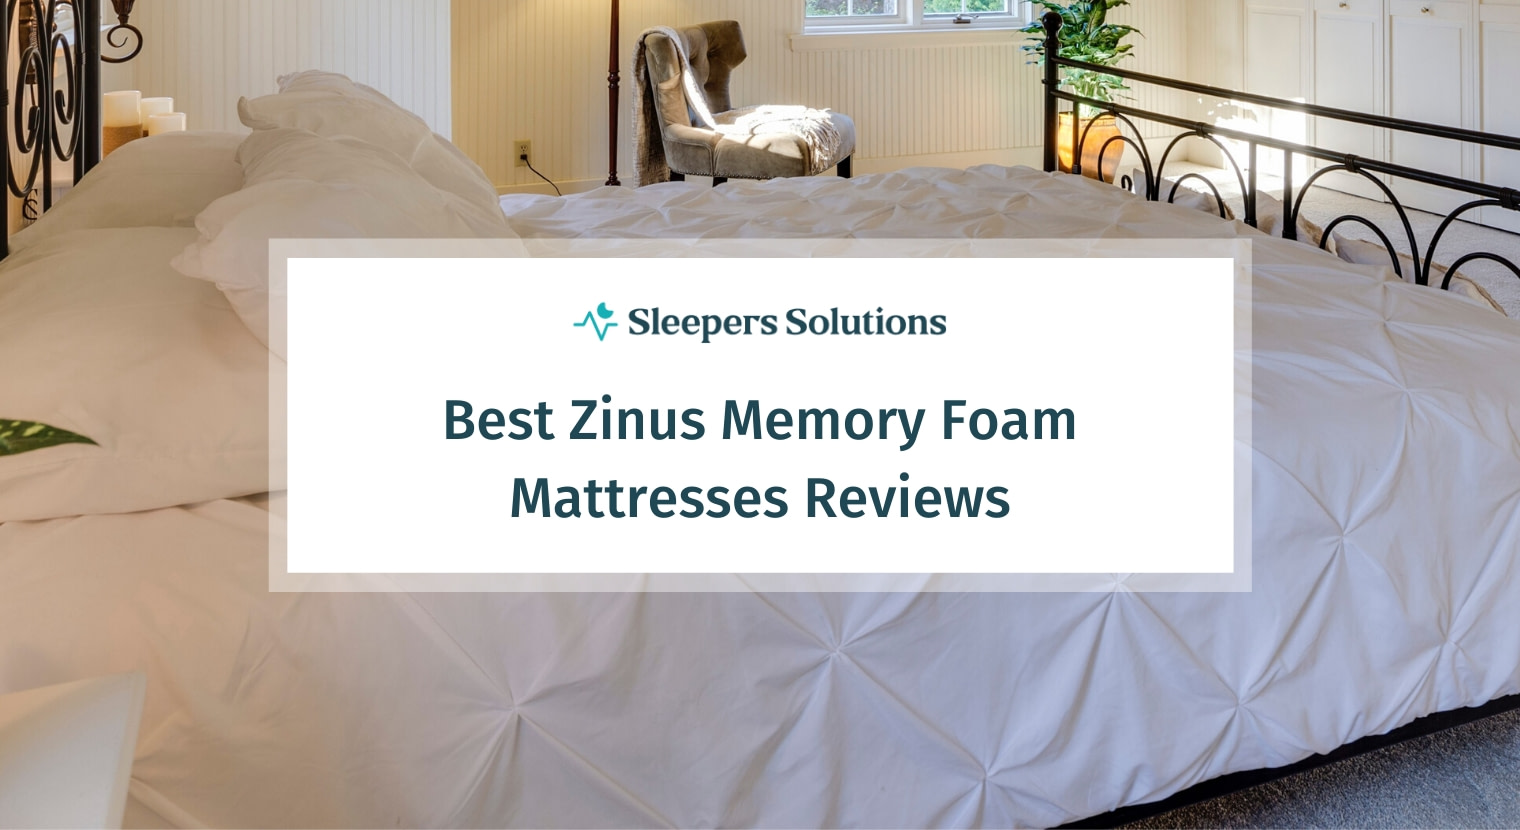 Best Zinus Memory Foam Mattresses Reviews